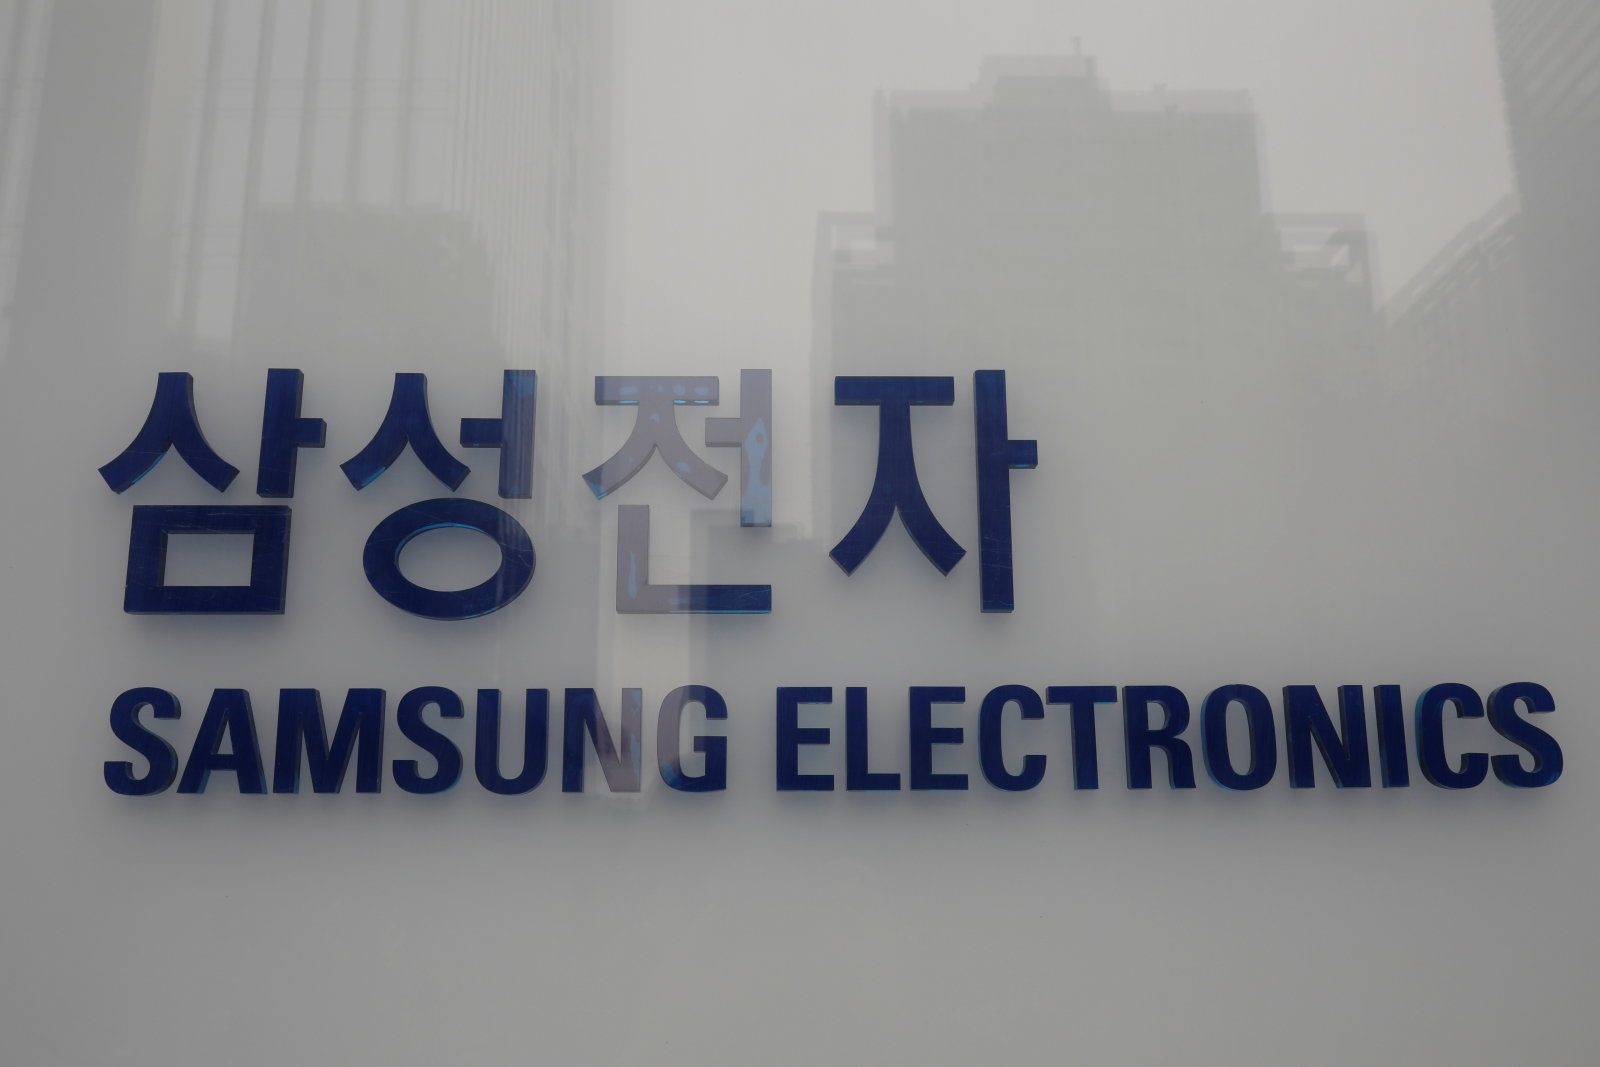 Samsung ordered to pay $11.6m to Huawei